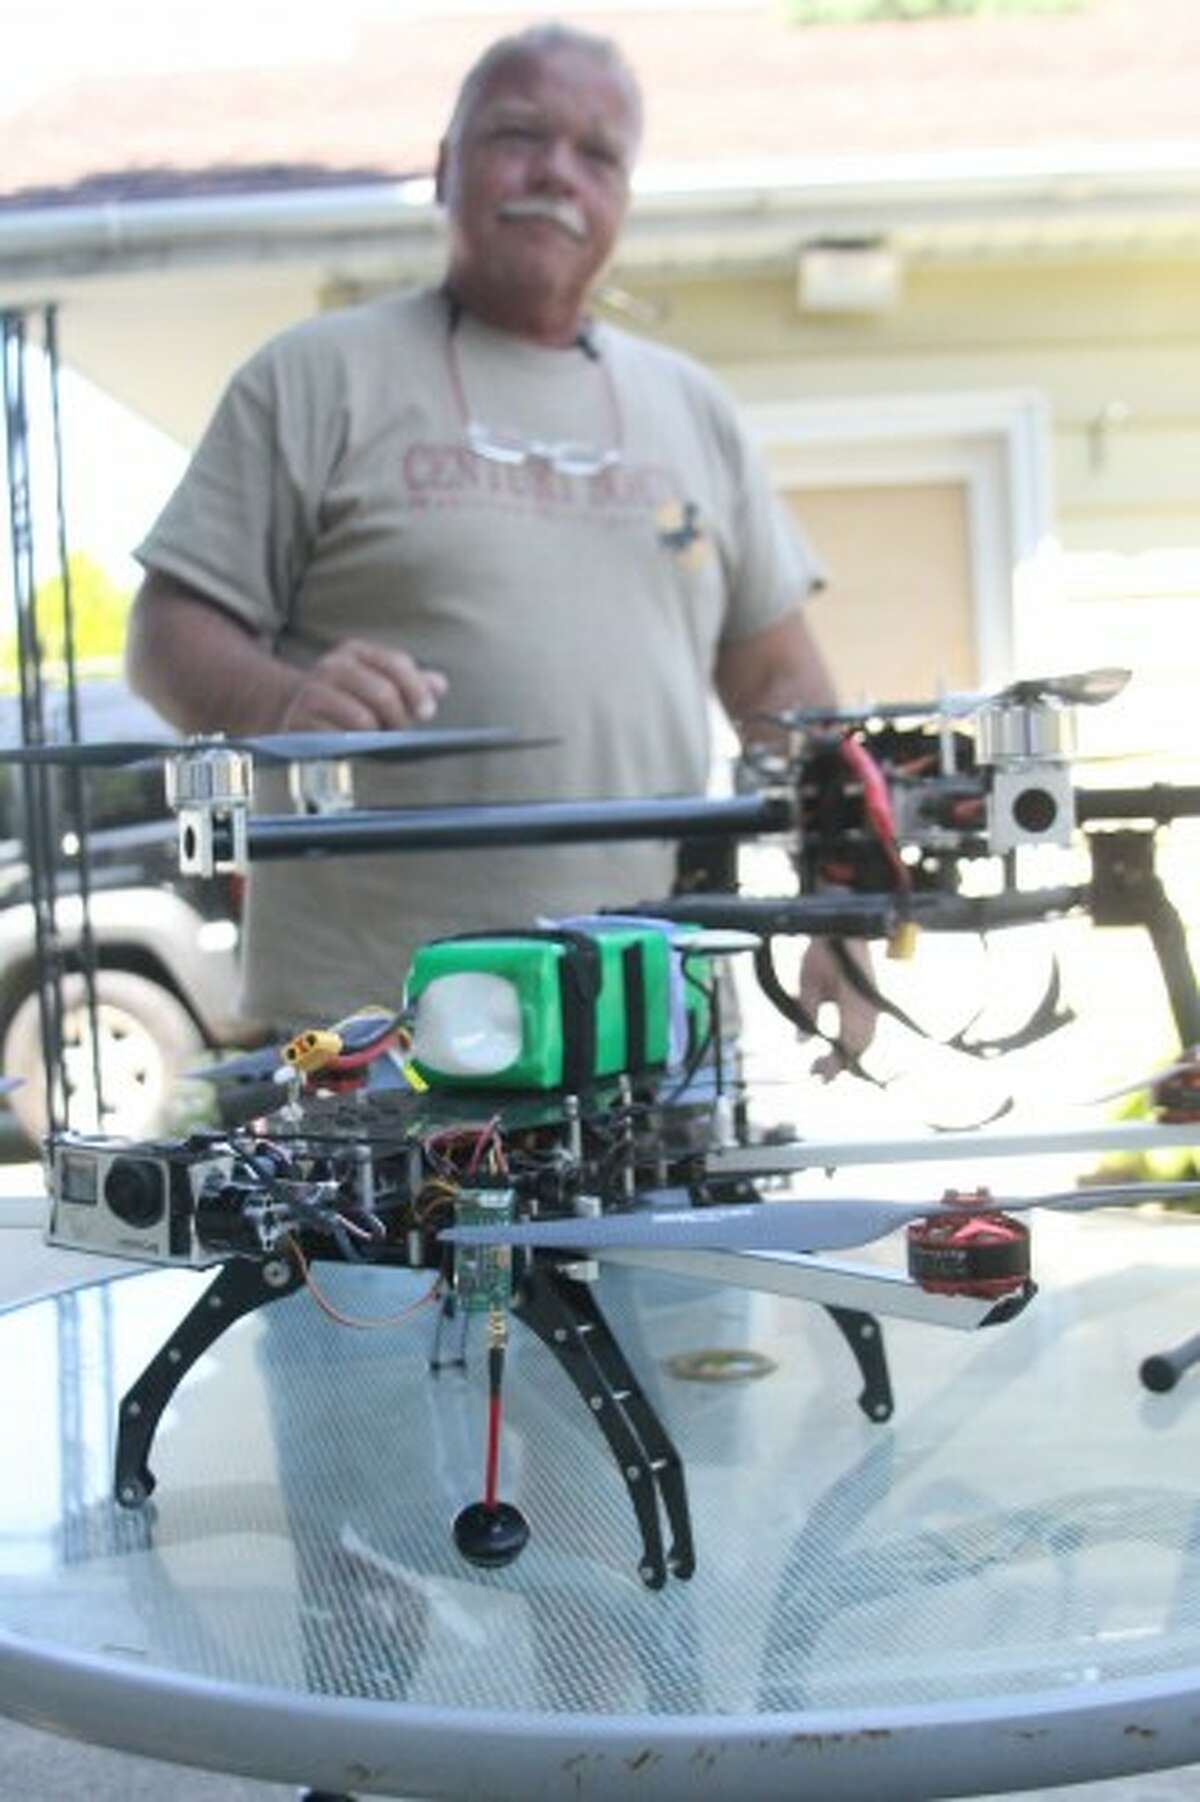 Areaux uses a Turbo Ace Matrix I drone and a Turbo Ace Infinity Six drone, each with a GoPro brand camera attached to capture photos and video. (Sean Bradley/News Advocate)